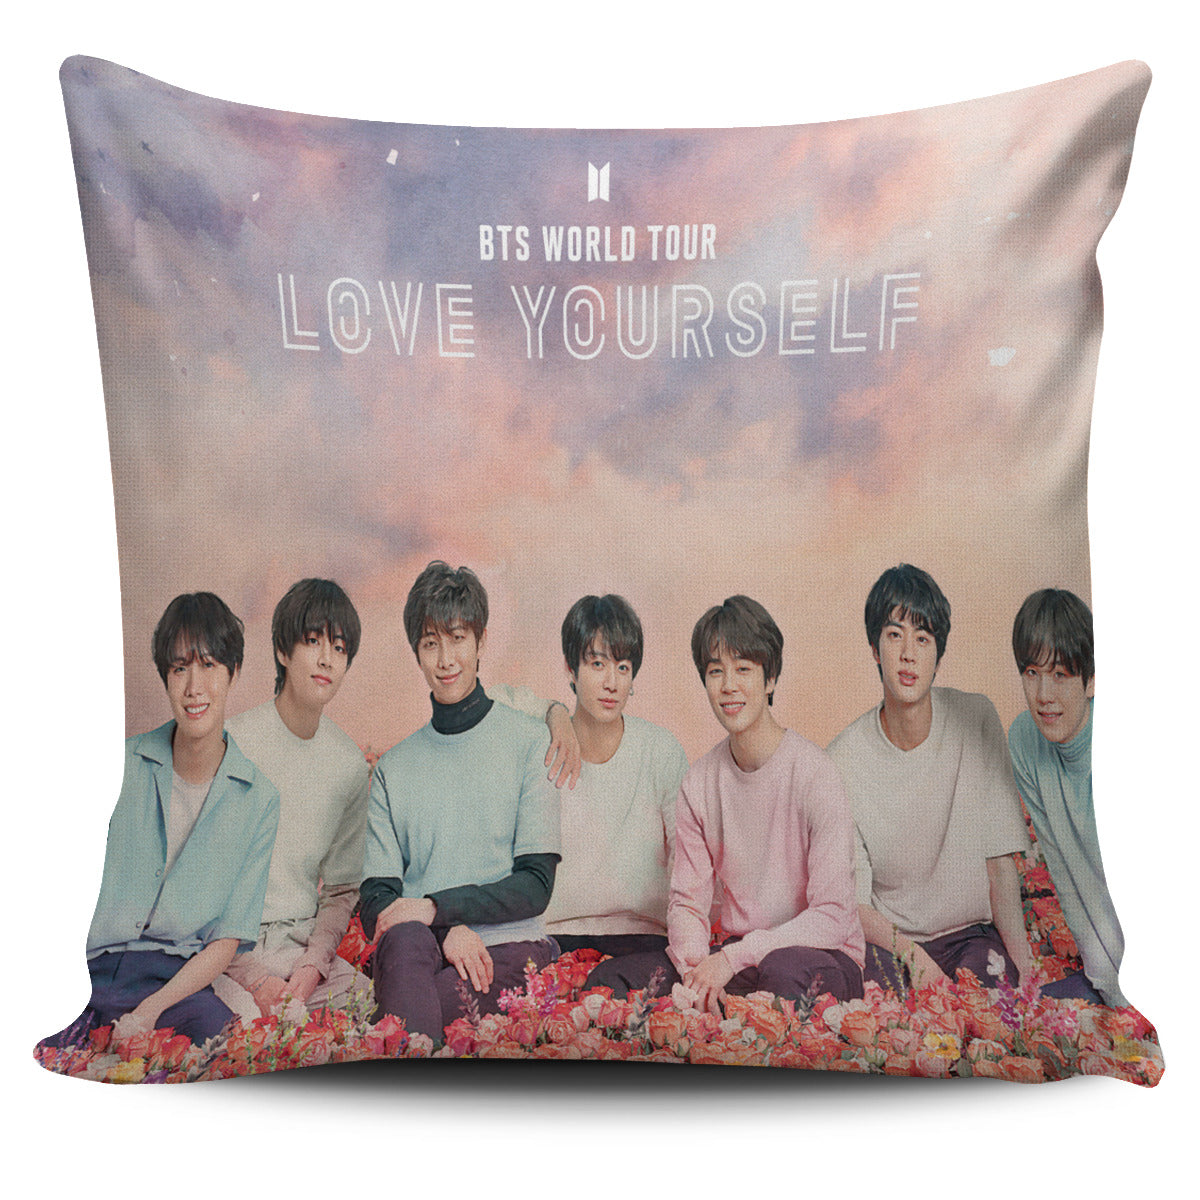 FREE Love Yourself Pillow Cover